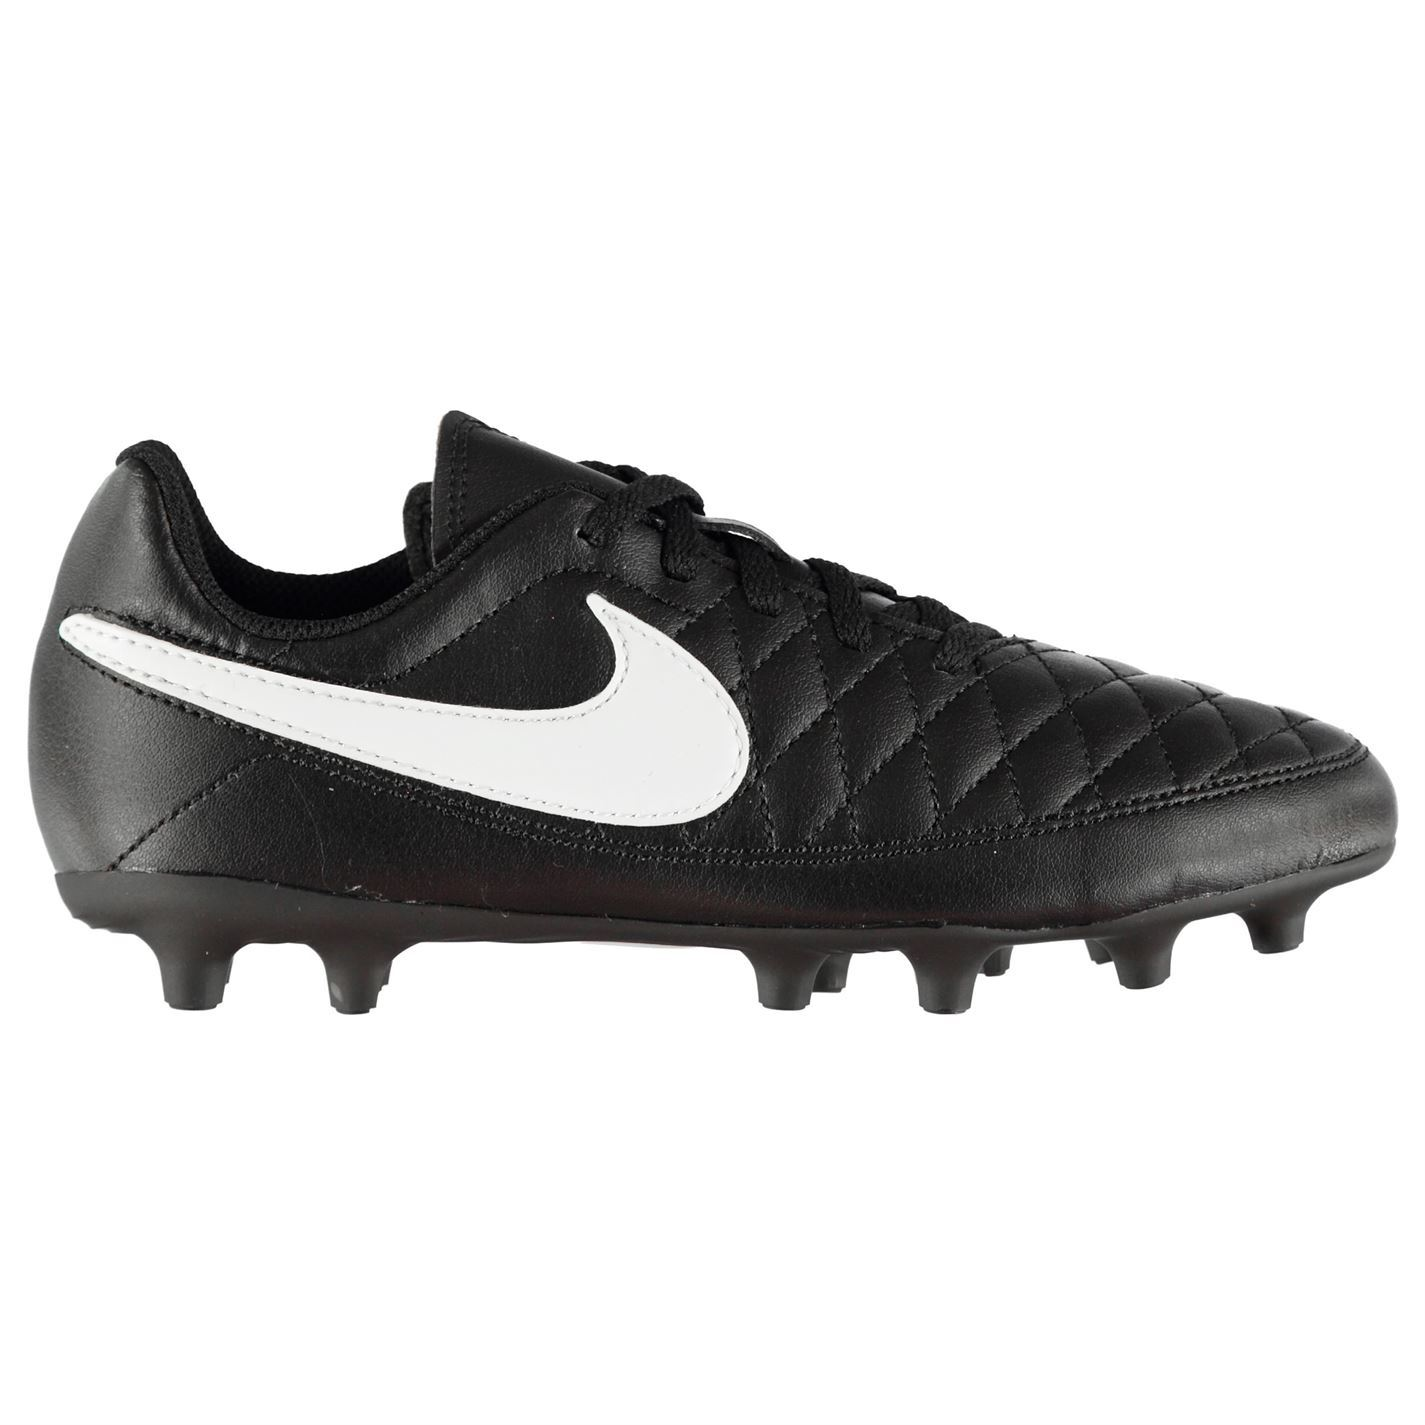 miniature 11 - Nike-majestry-FG-Firm-Ground-Chaussures-De-Football-Enfants-Football-Chaussures-Crampons